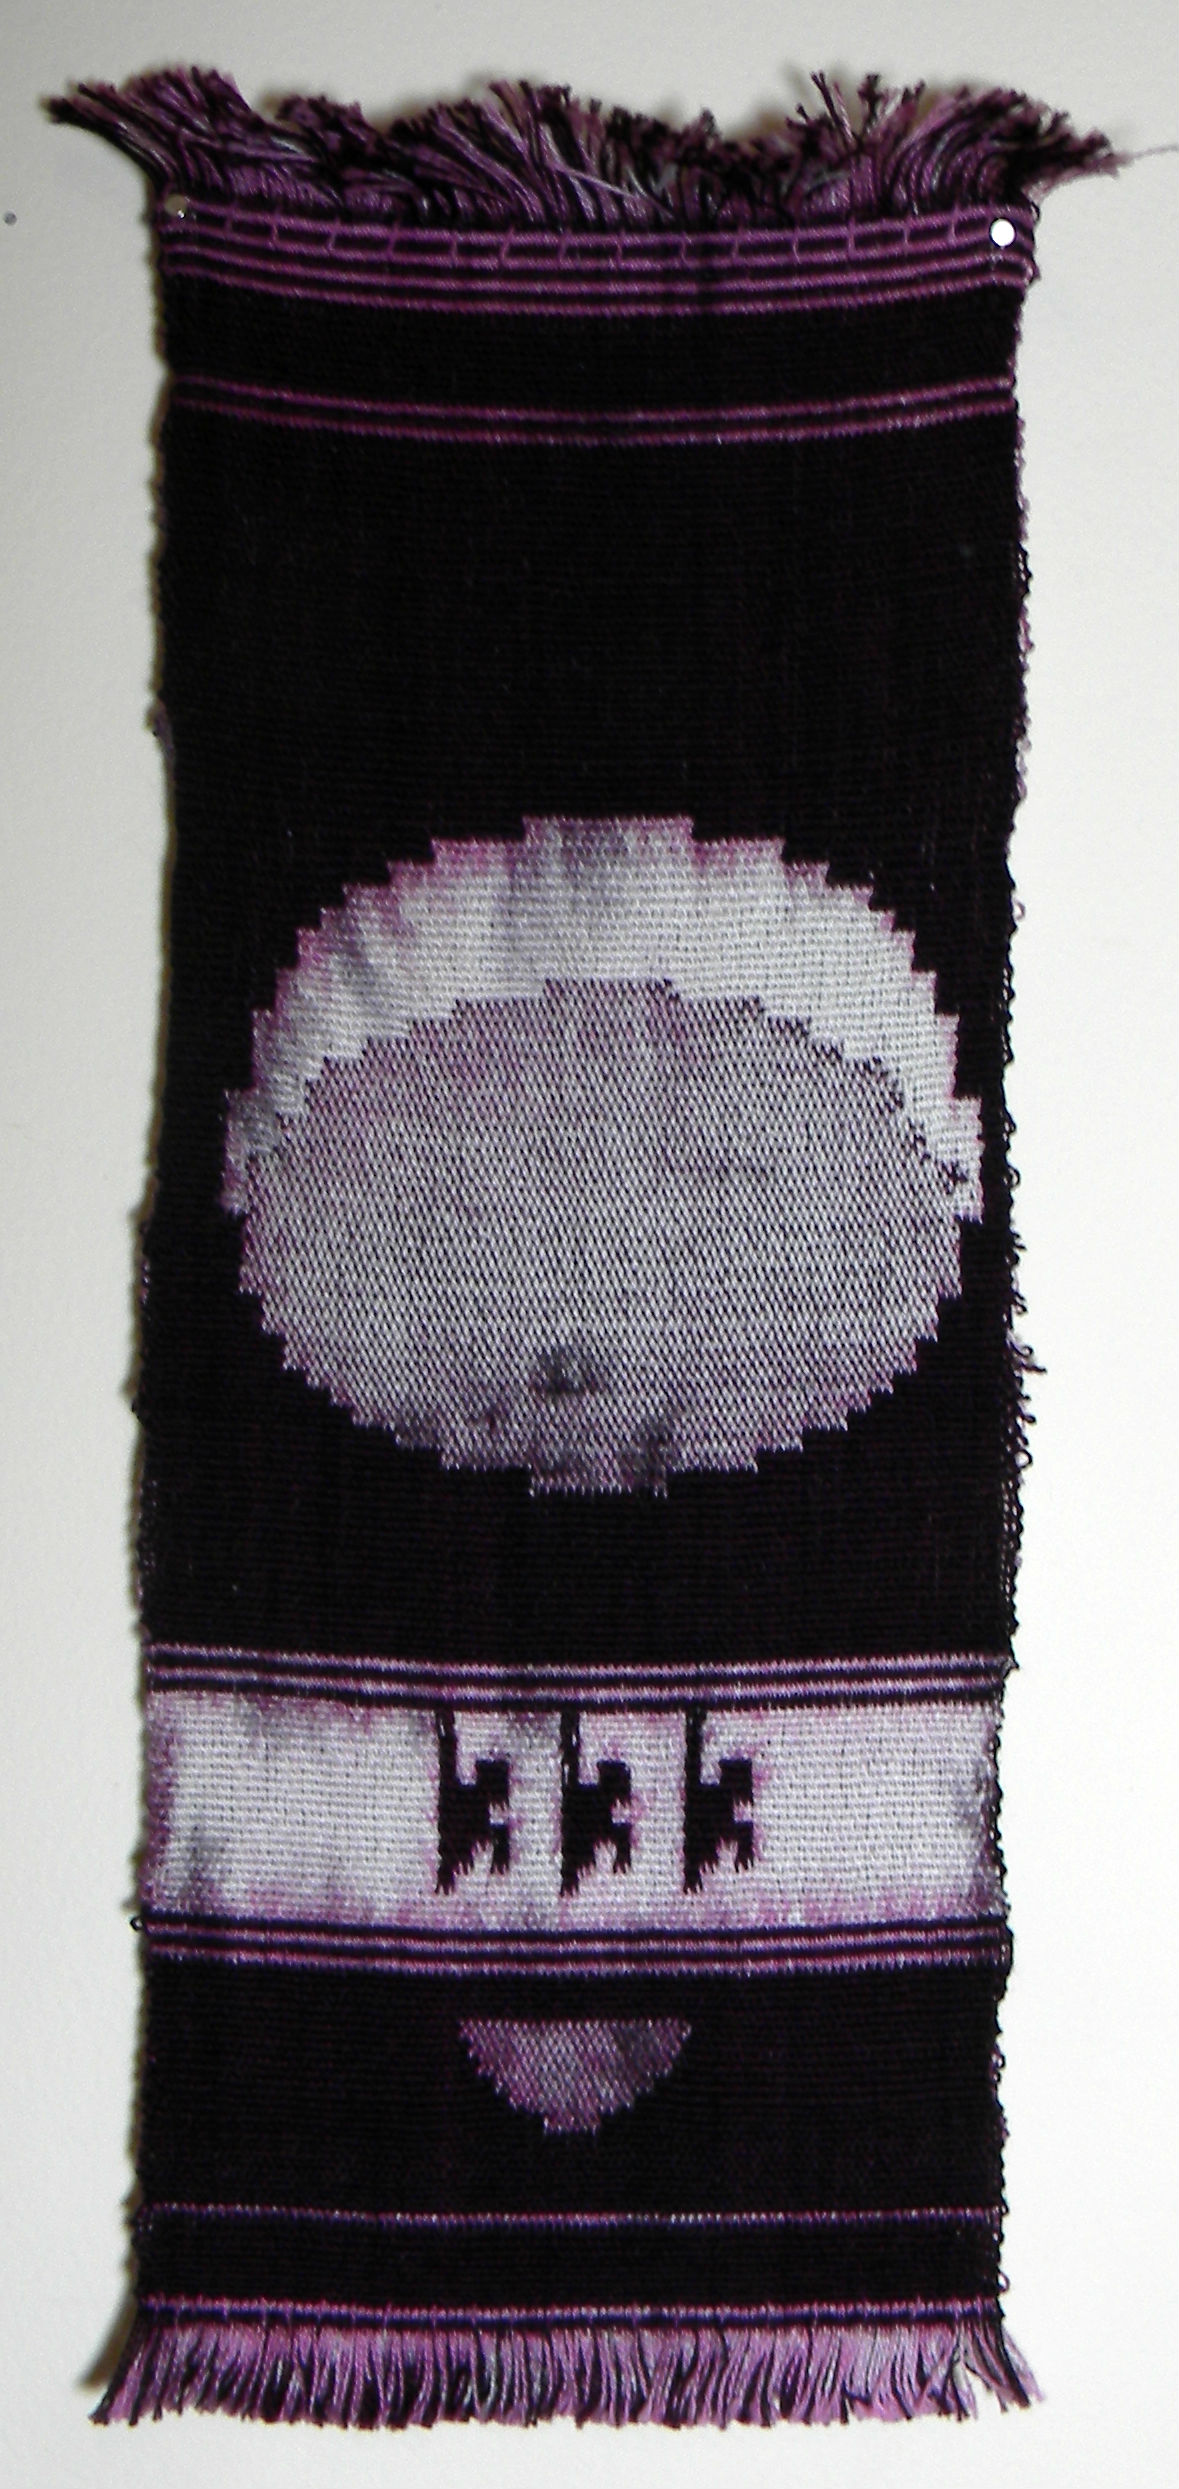 a purple and off-white handwoven wall hanging handwoven by Clare Nicholls